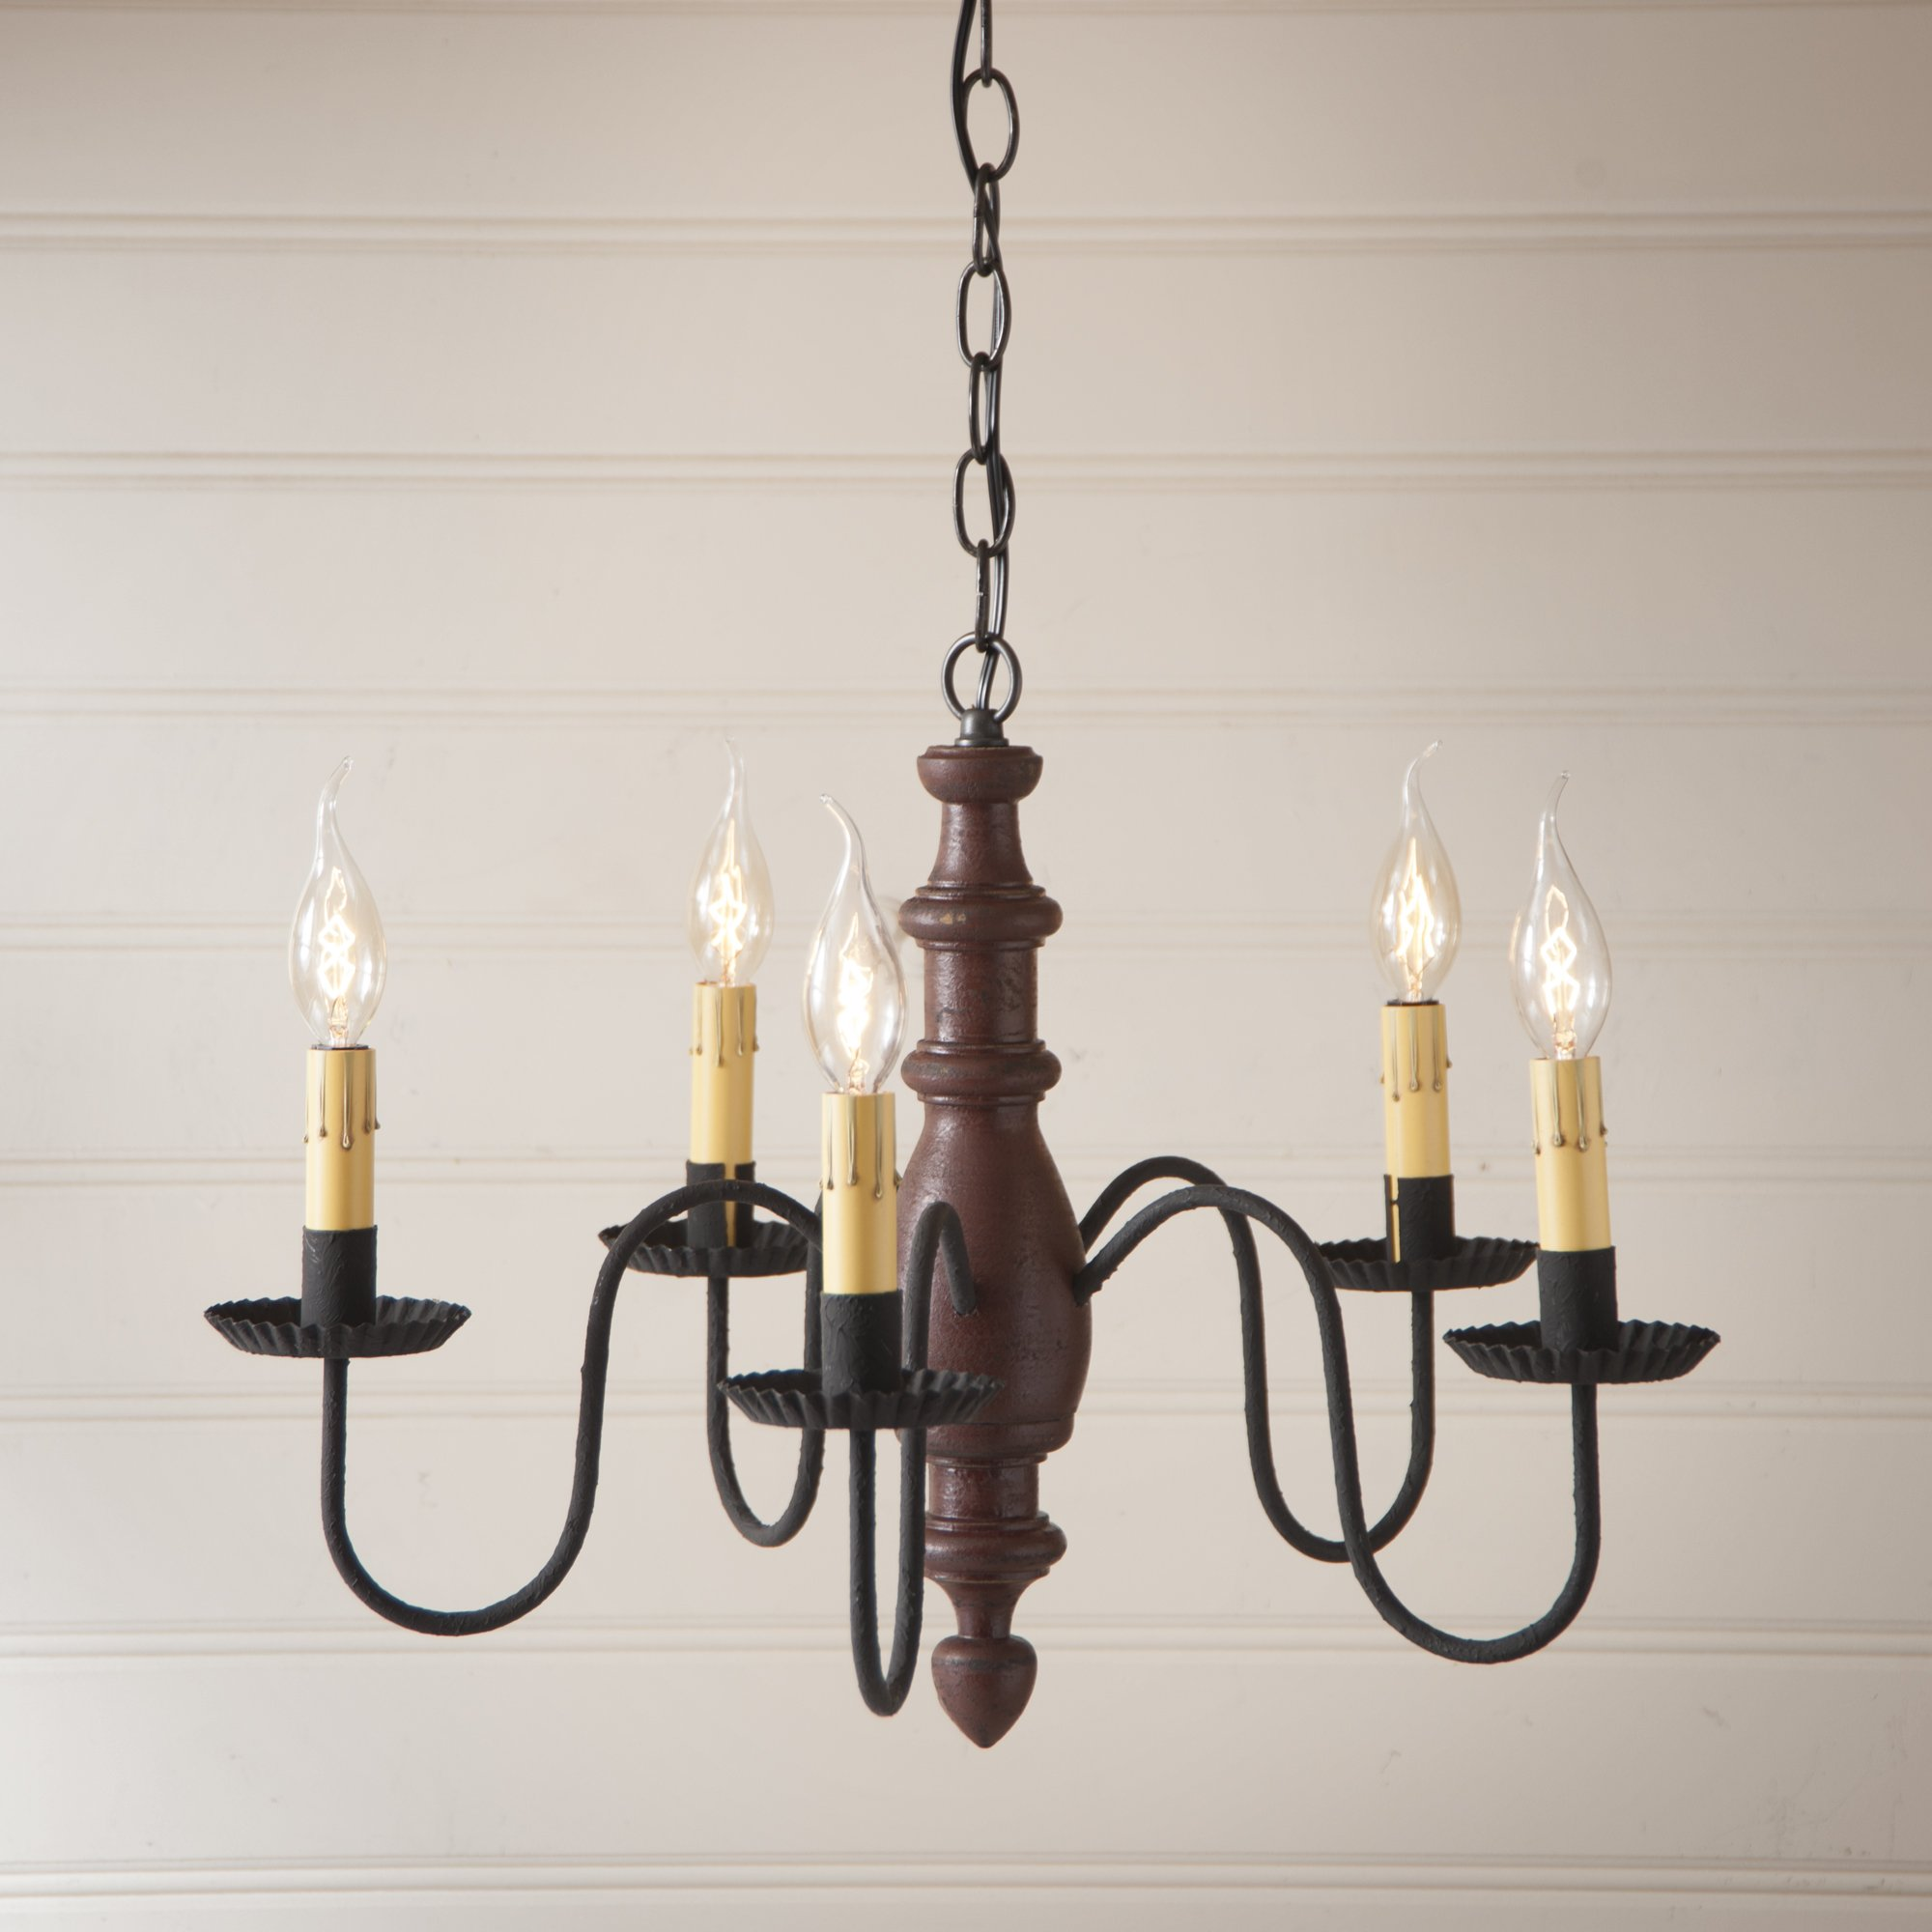 Country Inn Chandelier in Plantation Red